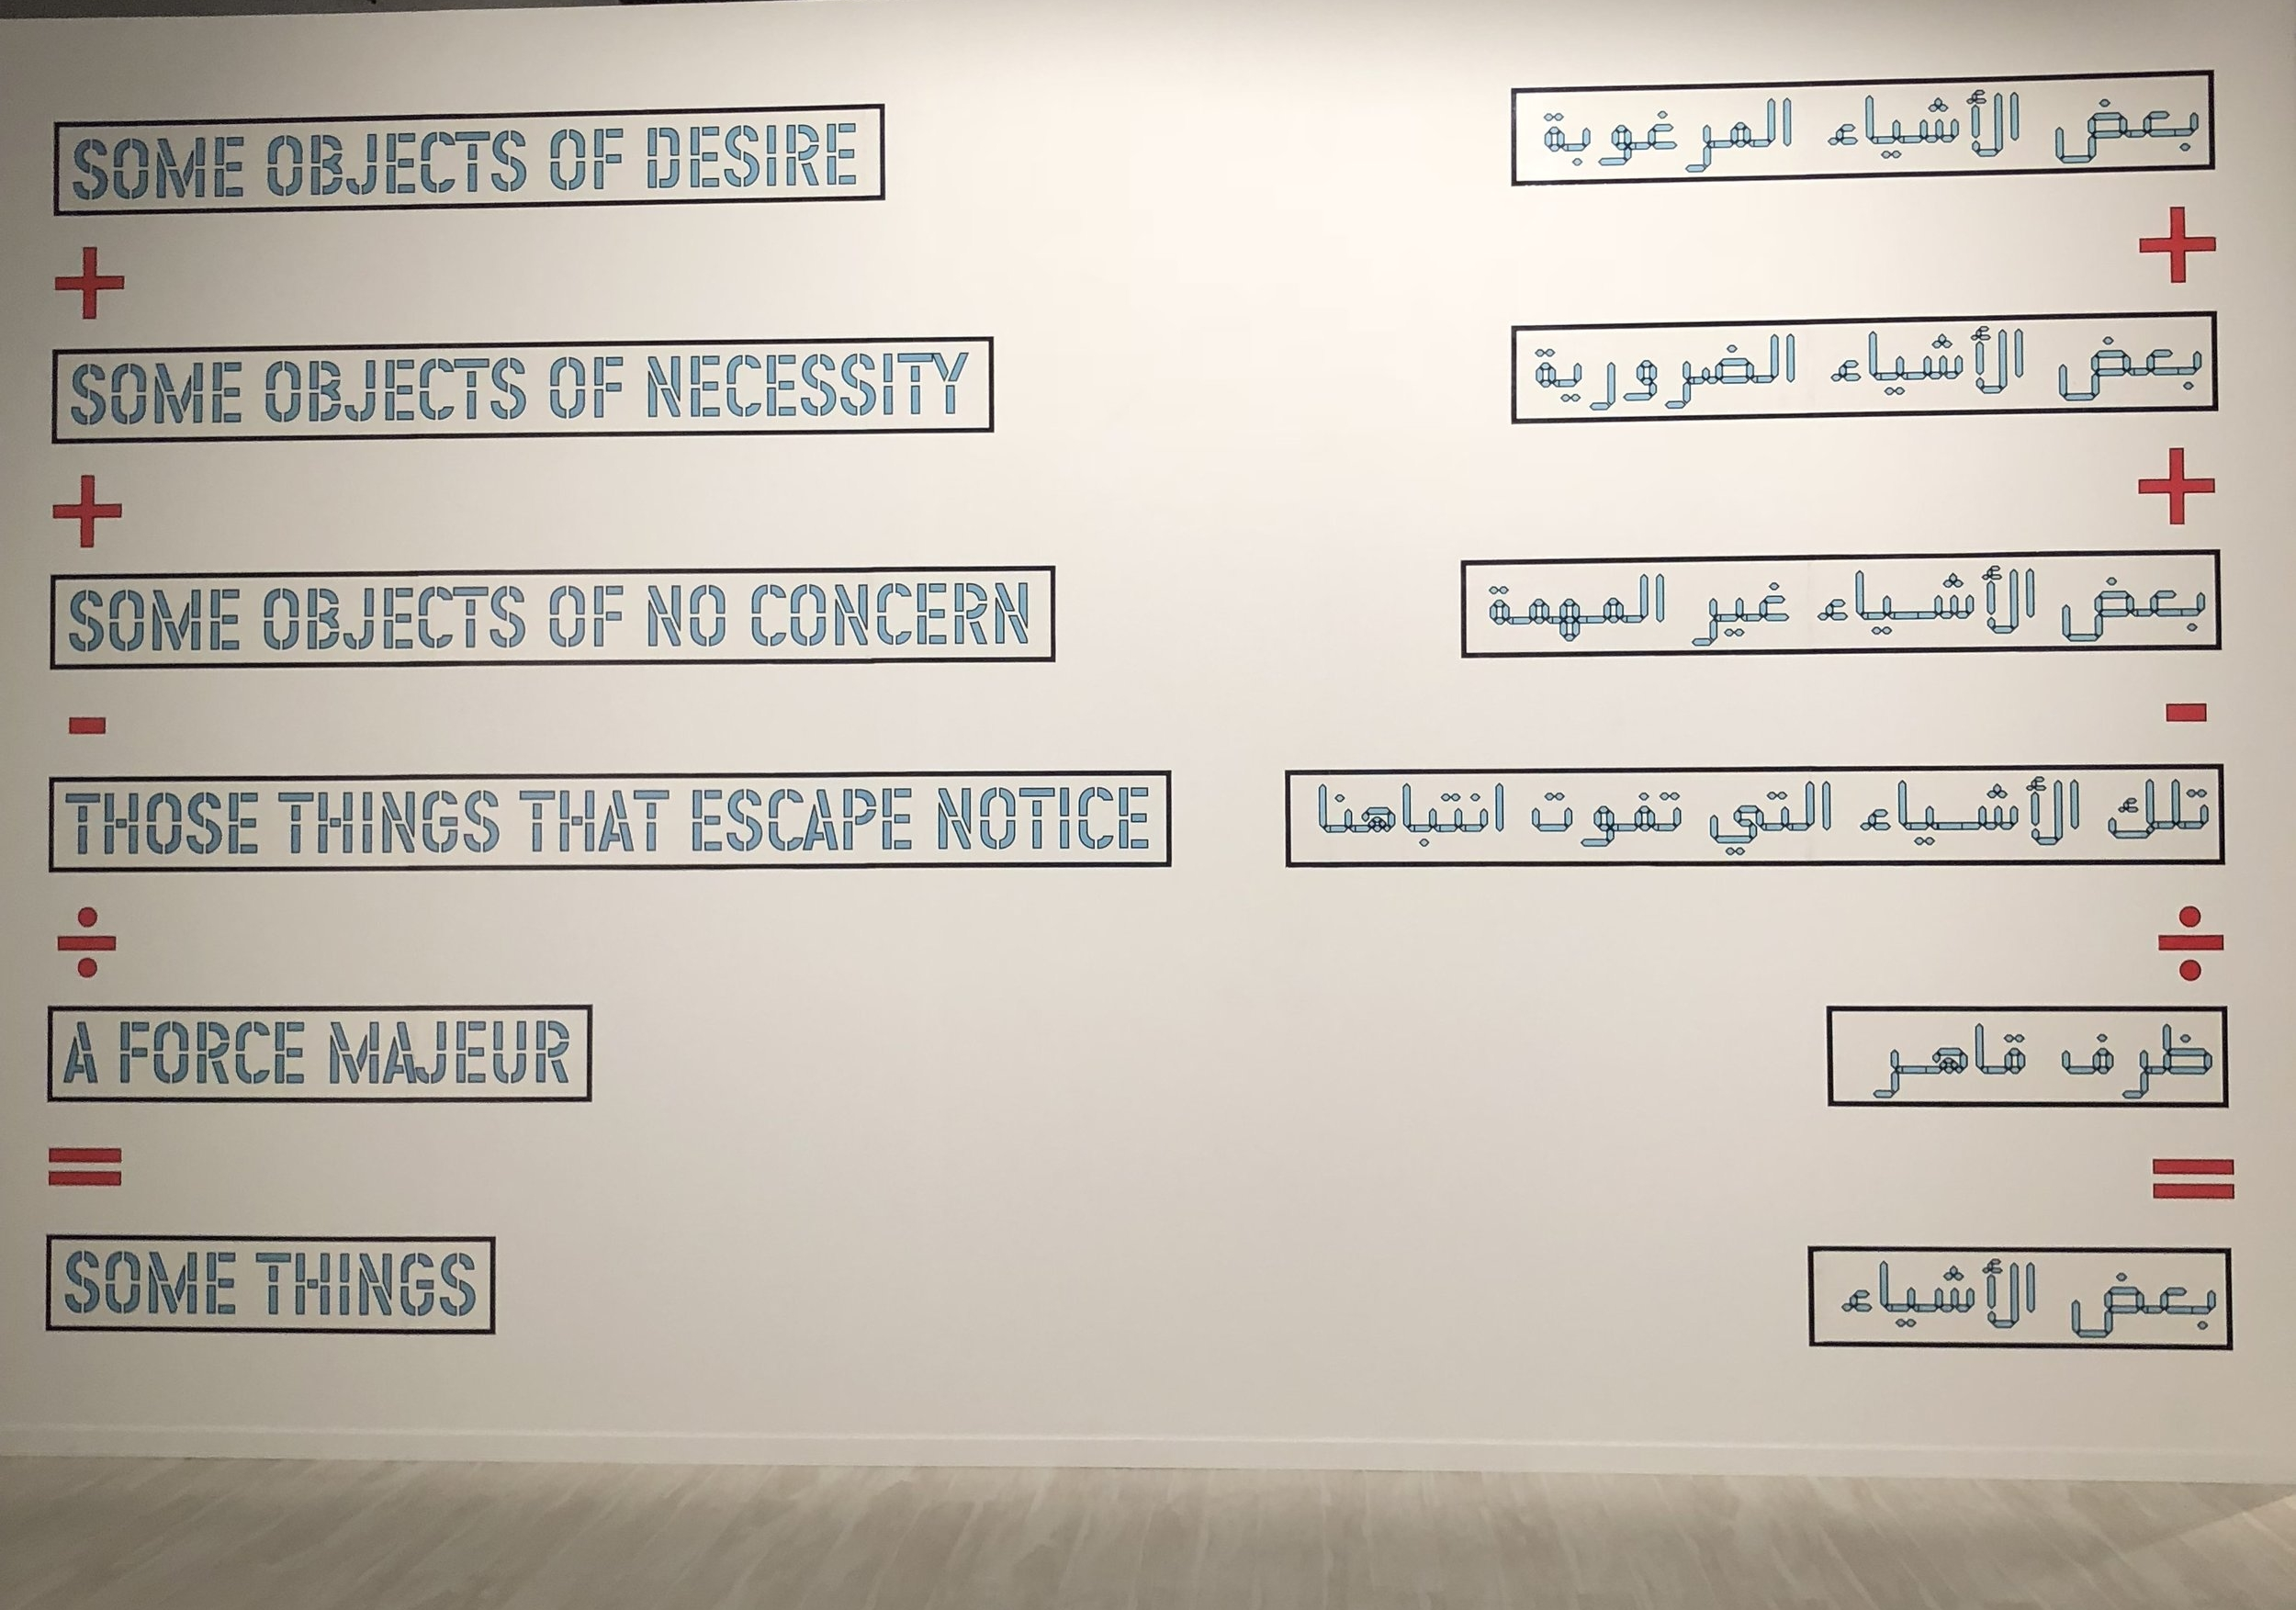 The first work that hangs in  From Barcelona to Abu Dhabi - Works from MACBA in dialogue with the Emirates.  Lawrence Weiner's text-based piece  Some Objects of Desire  that has been translated for this exhibition from English to Arabic.Image taken by Anna Seaman